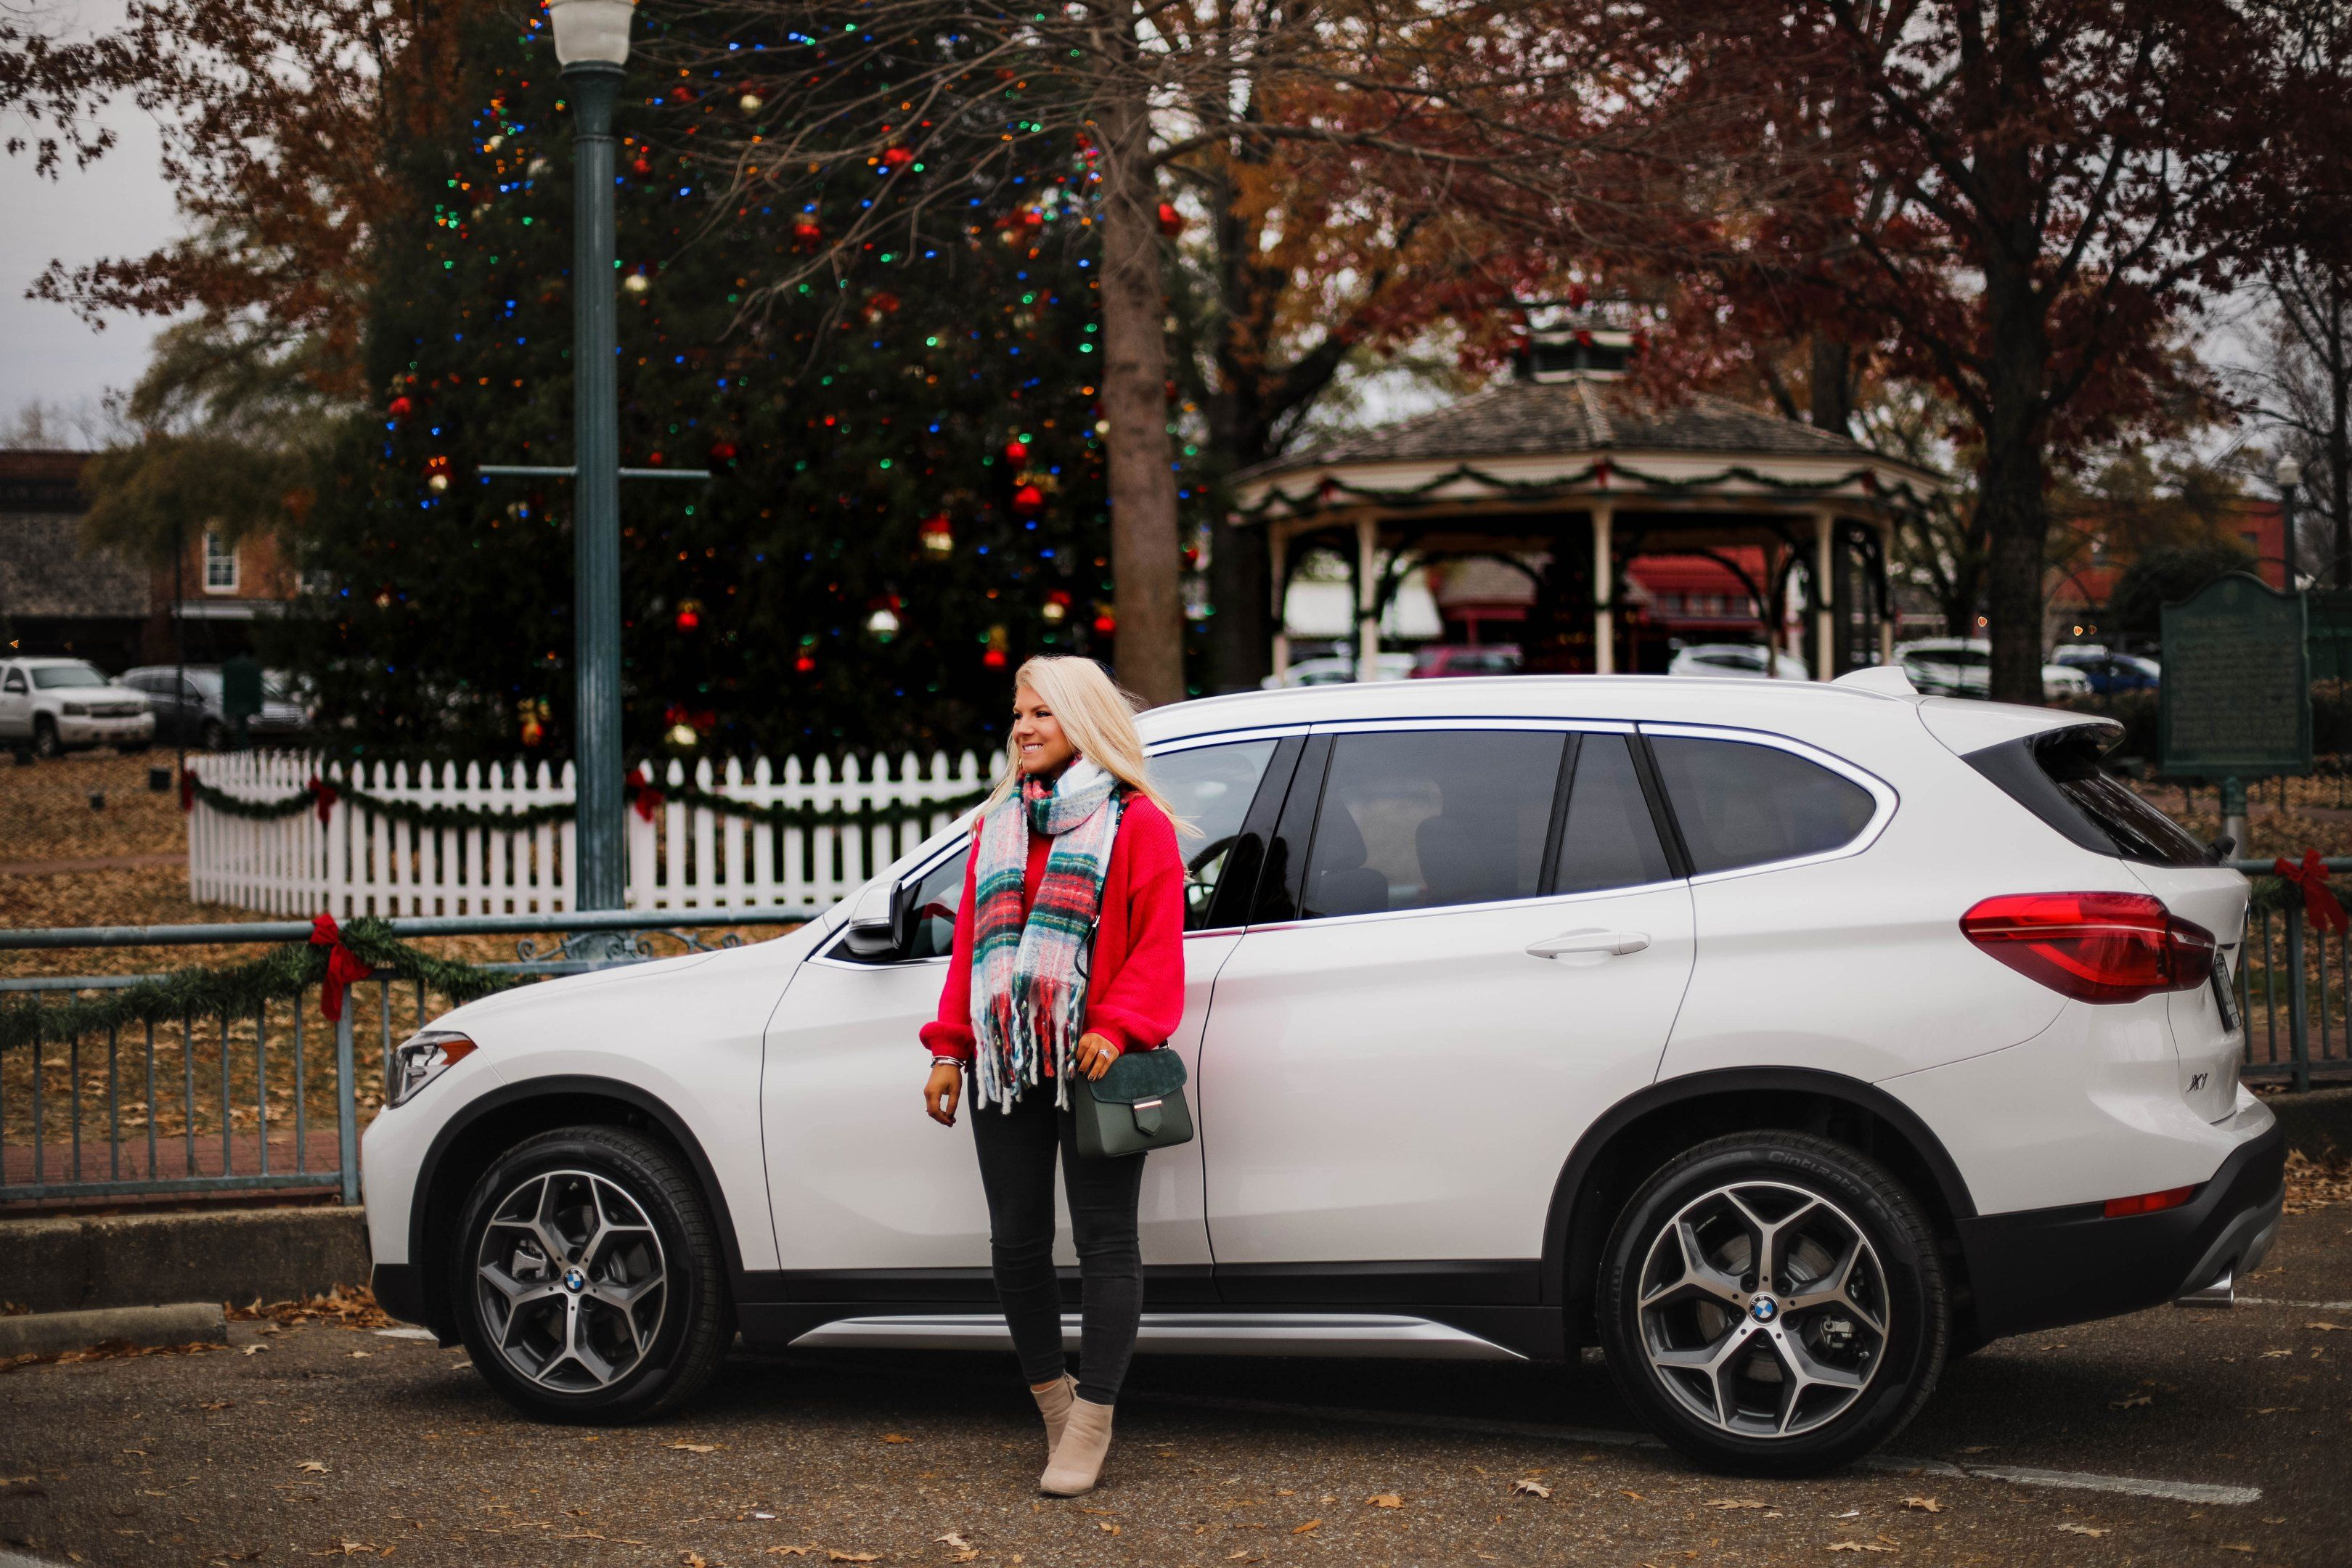 My Day With The Bmw X1 Bmw Car Holiday Sweater